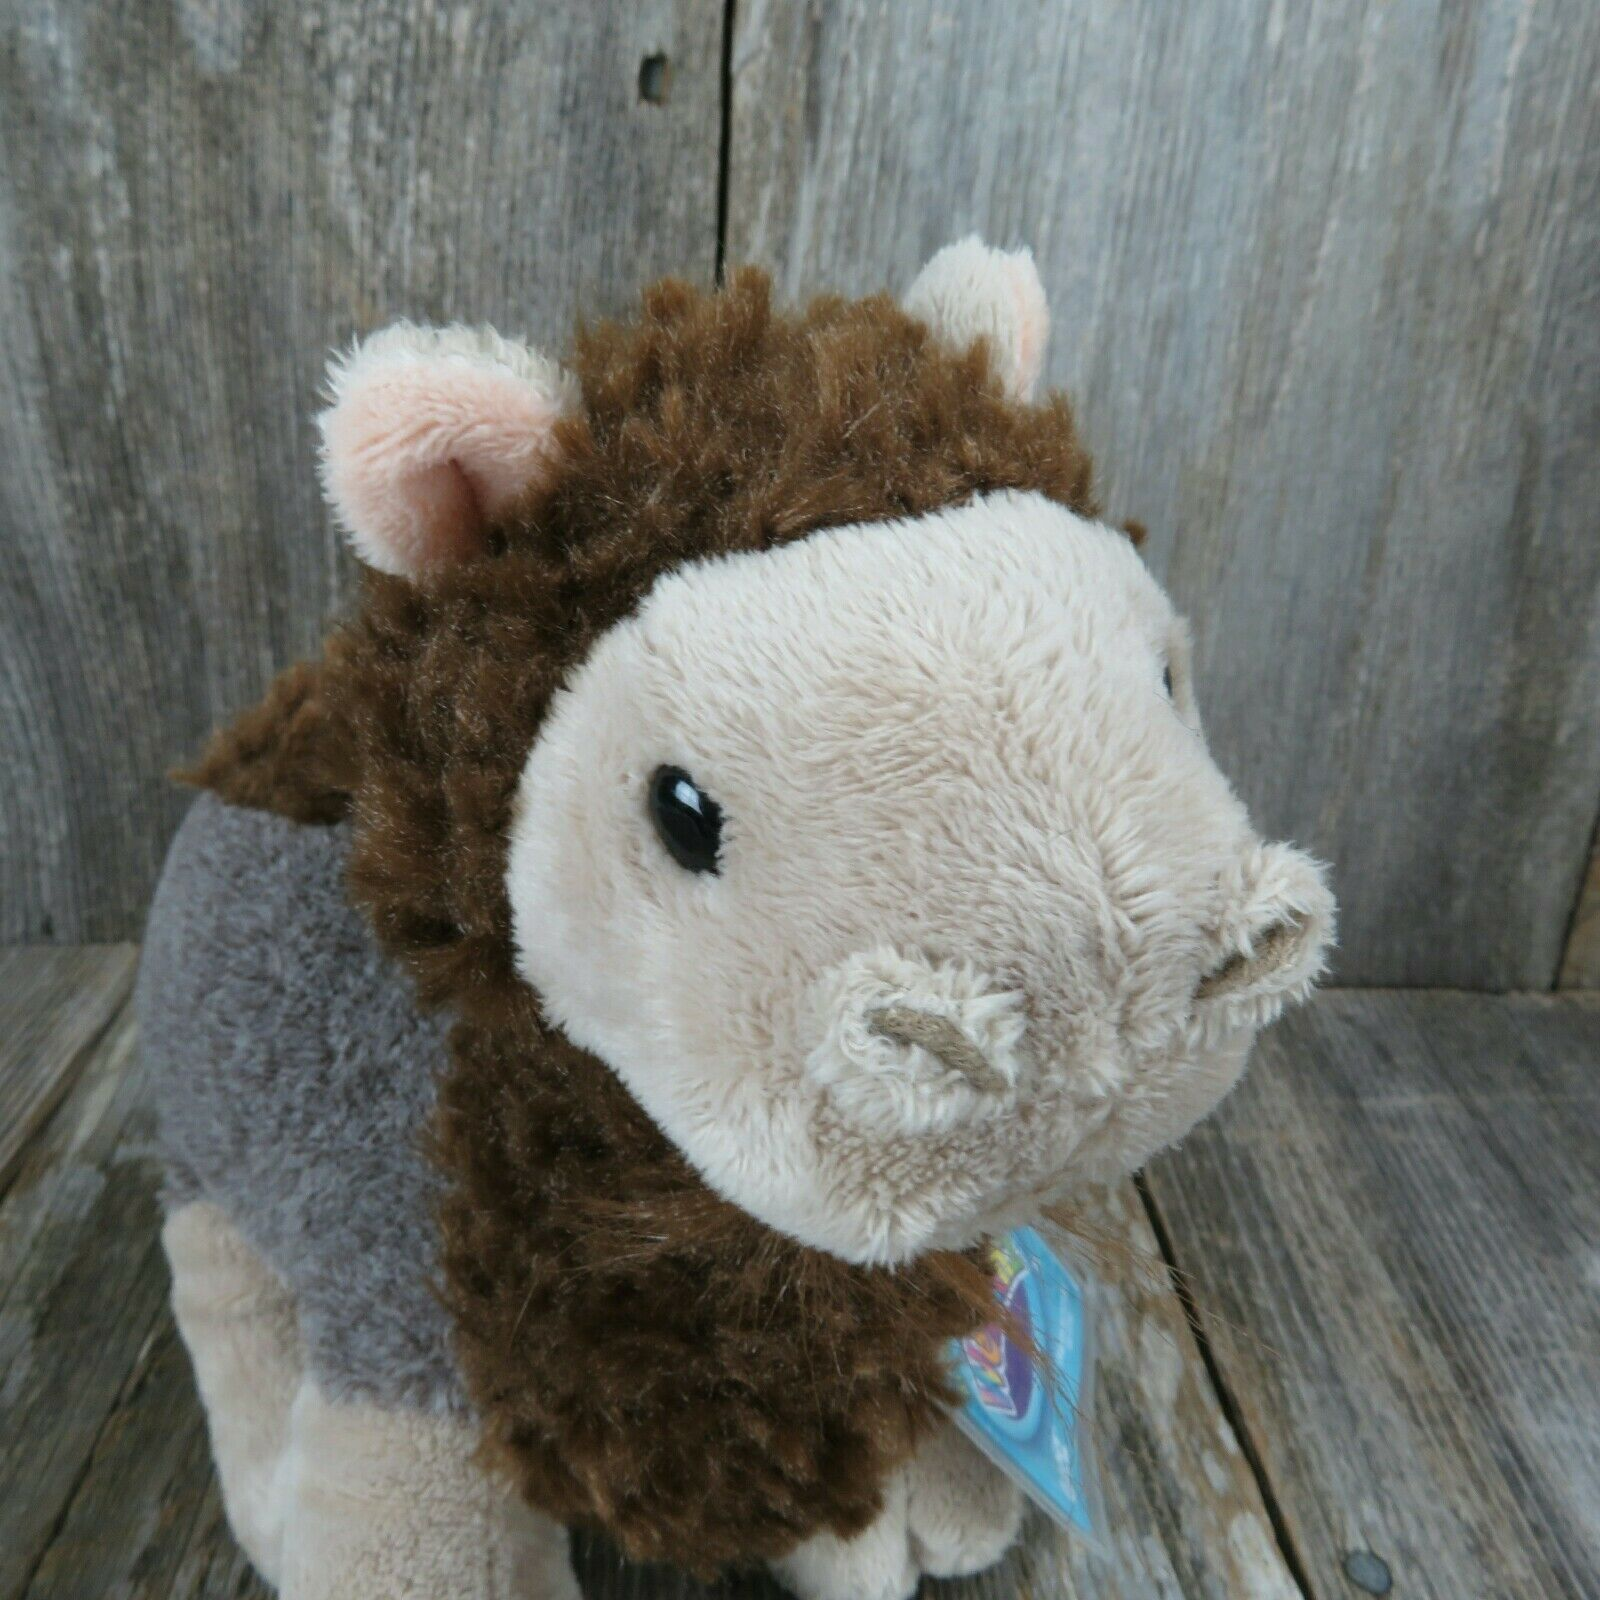 Ganz Webkinz Curly Camel Brown Plush Stuffed Animal 8 Inch HM568 Secret Code